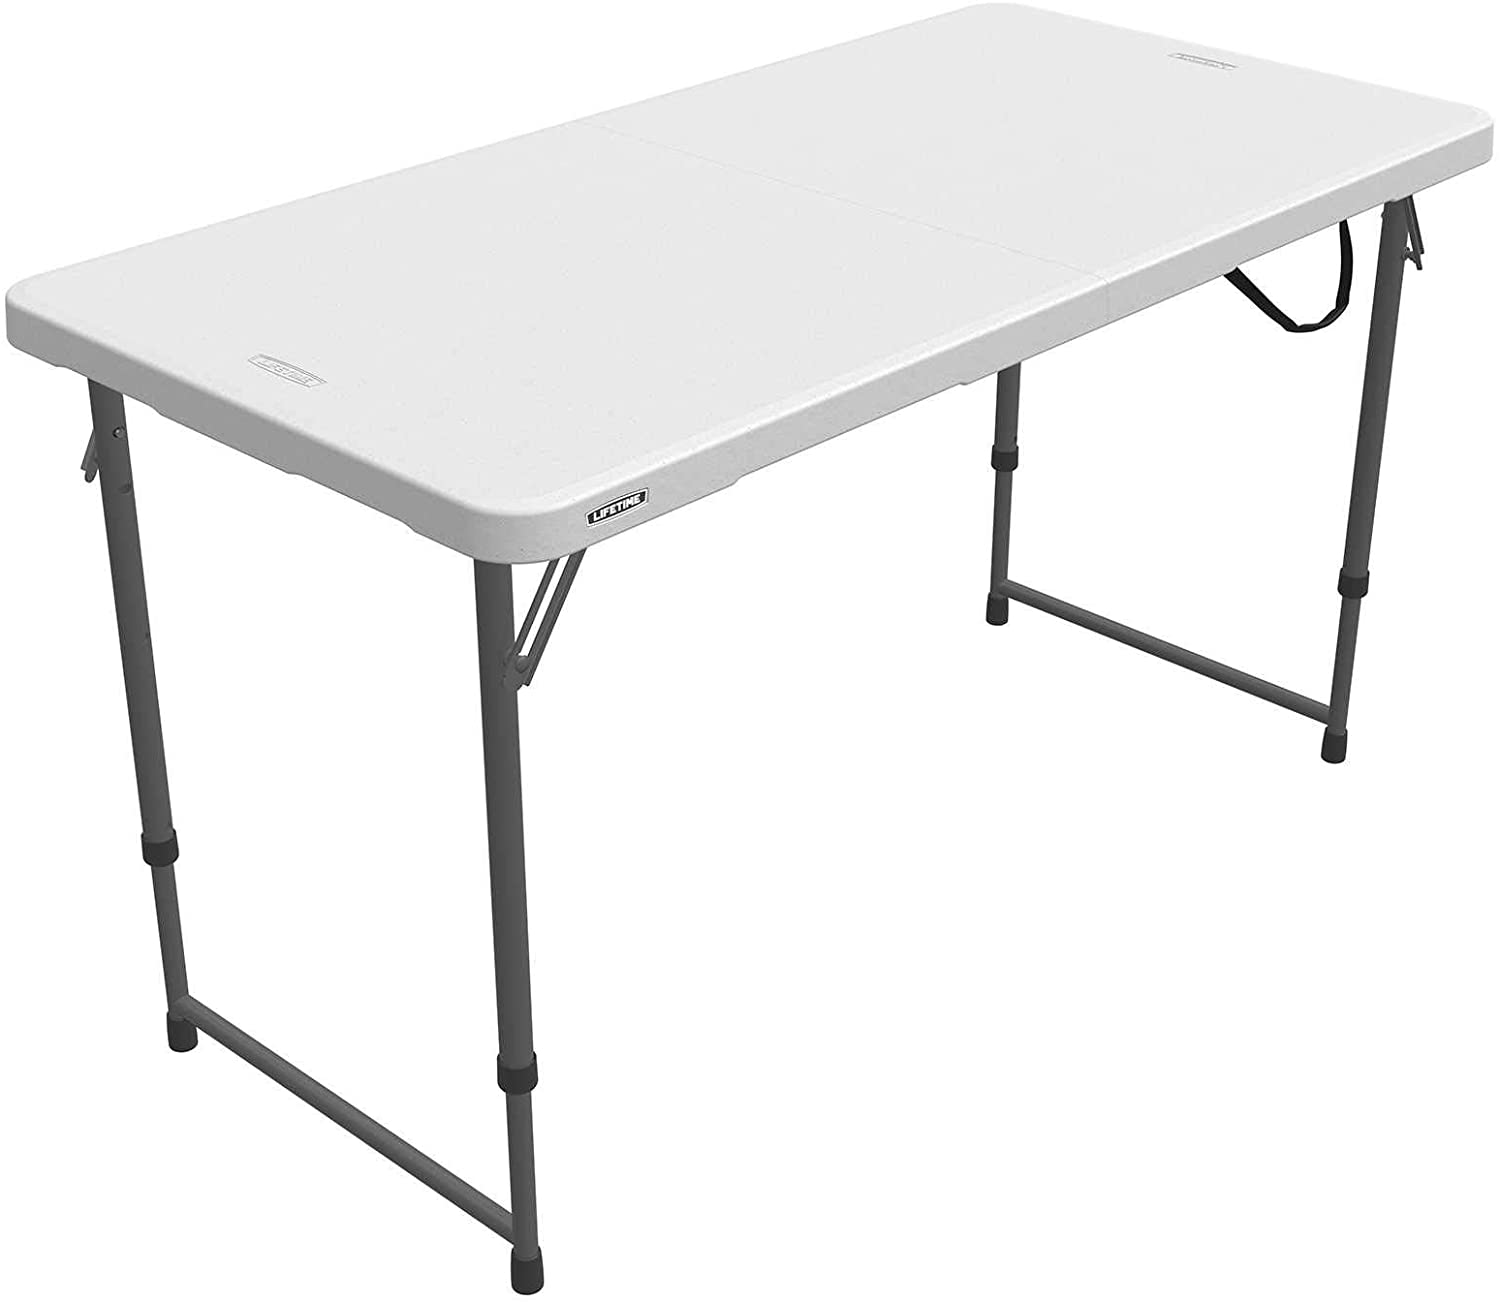 Lifetime Camping and Utility Folding Table